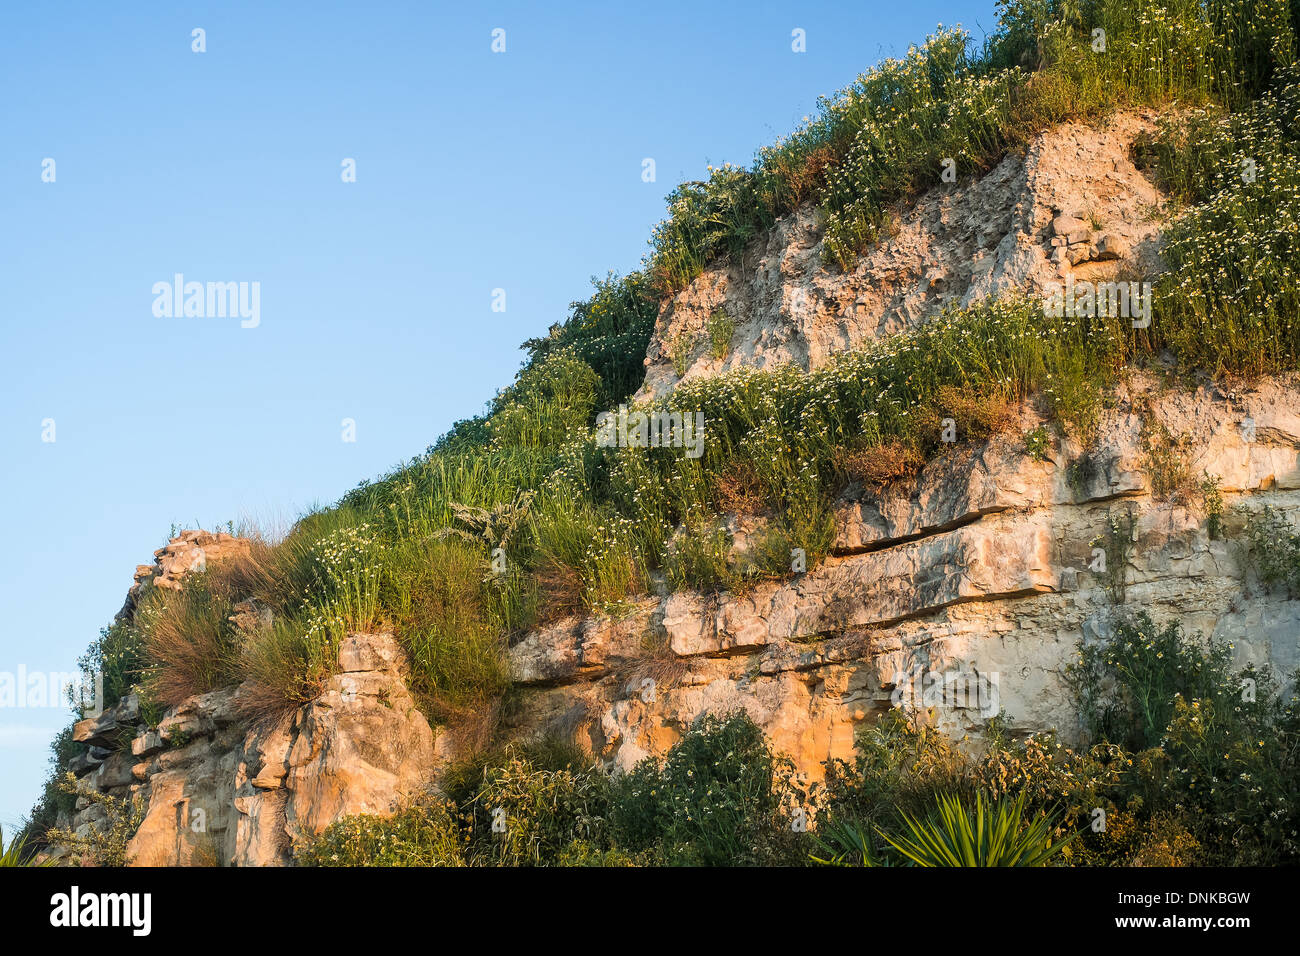 Section of ruined city  walls, Ubeda, Andalucia, Spain Stock Photo